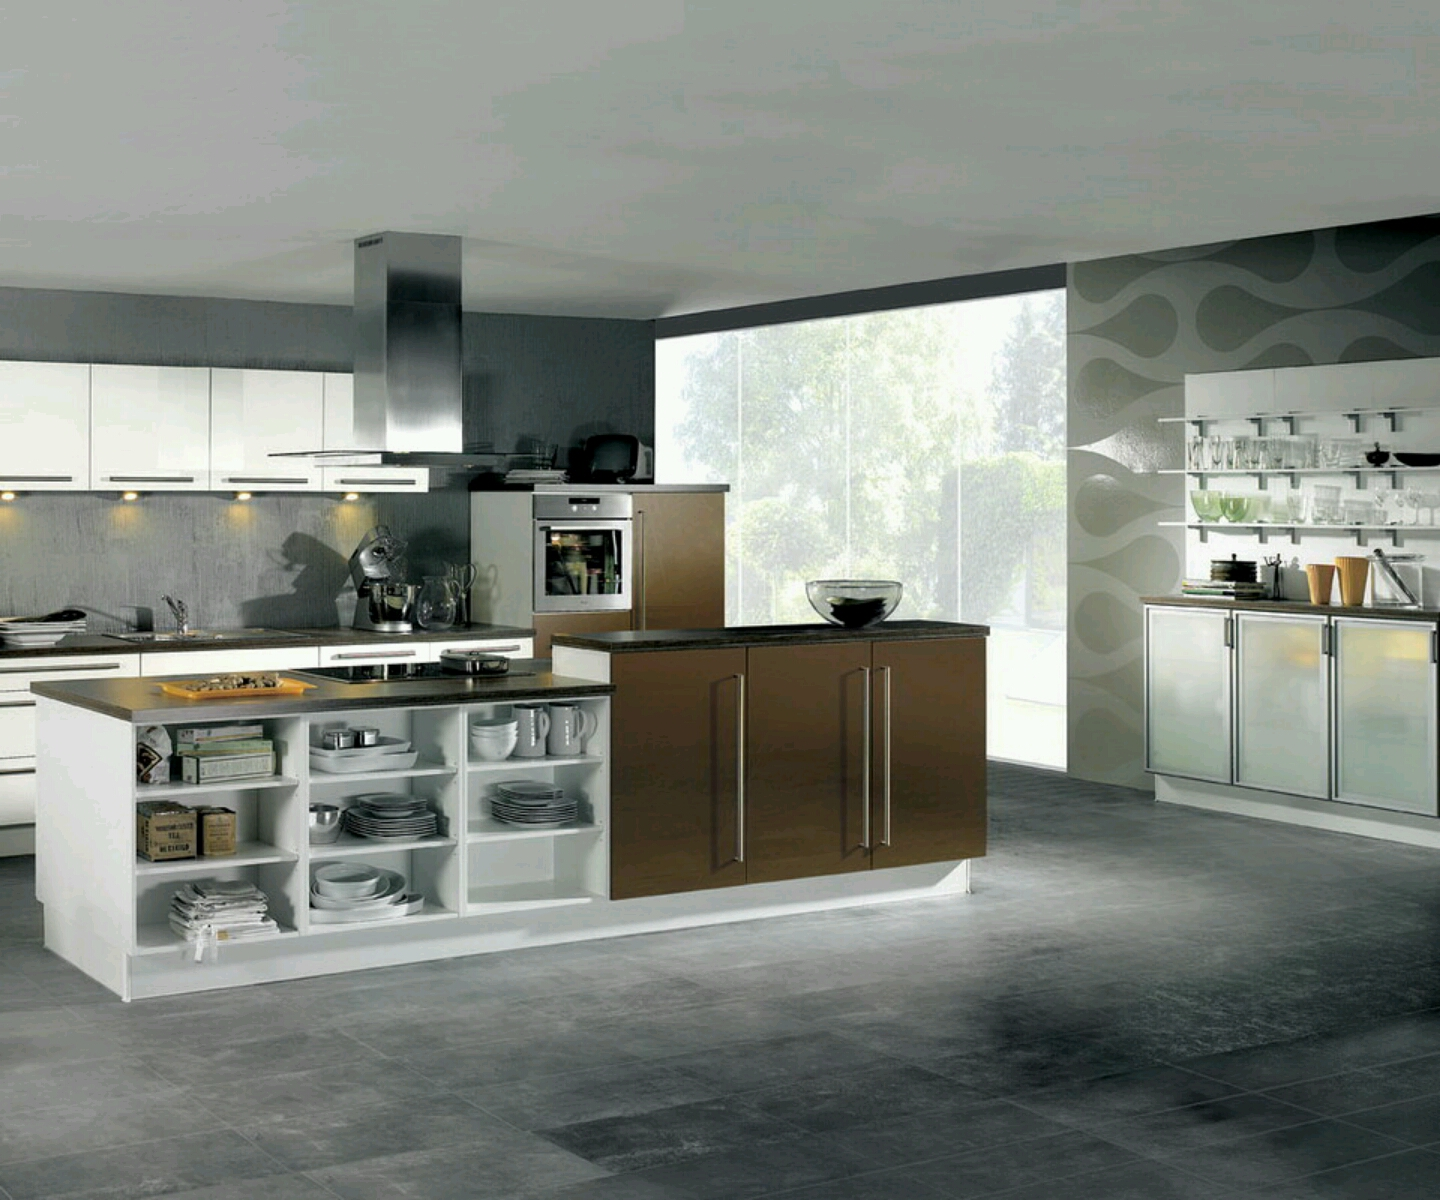 New home designs latest ultra modern kitchen designs ideas for Ideas for new kitchen design